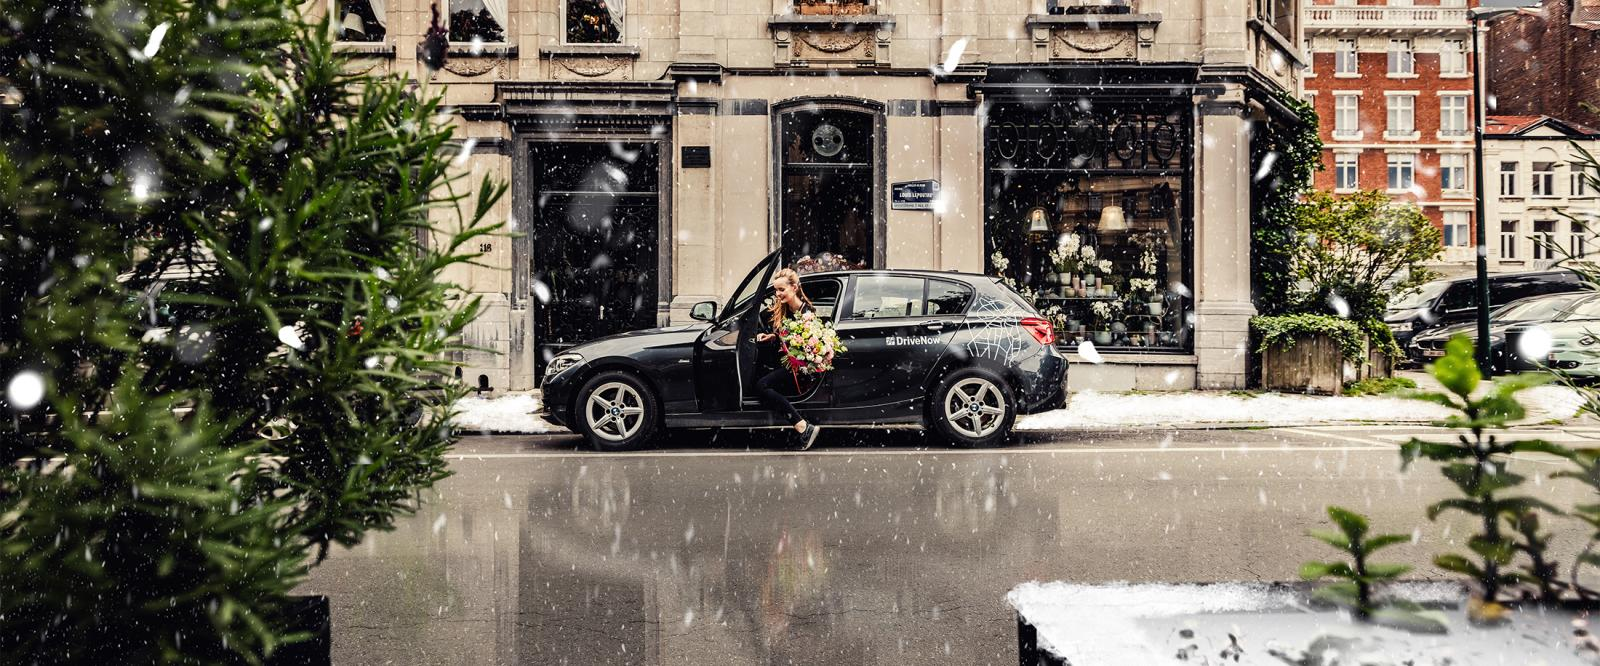 drivenow_brussels_bmw_1series_shopping_snow